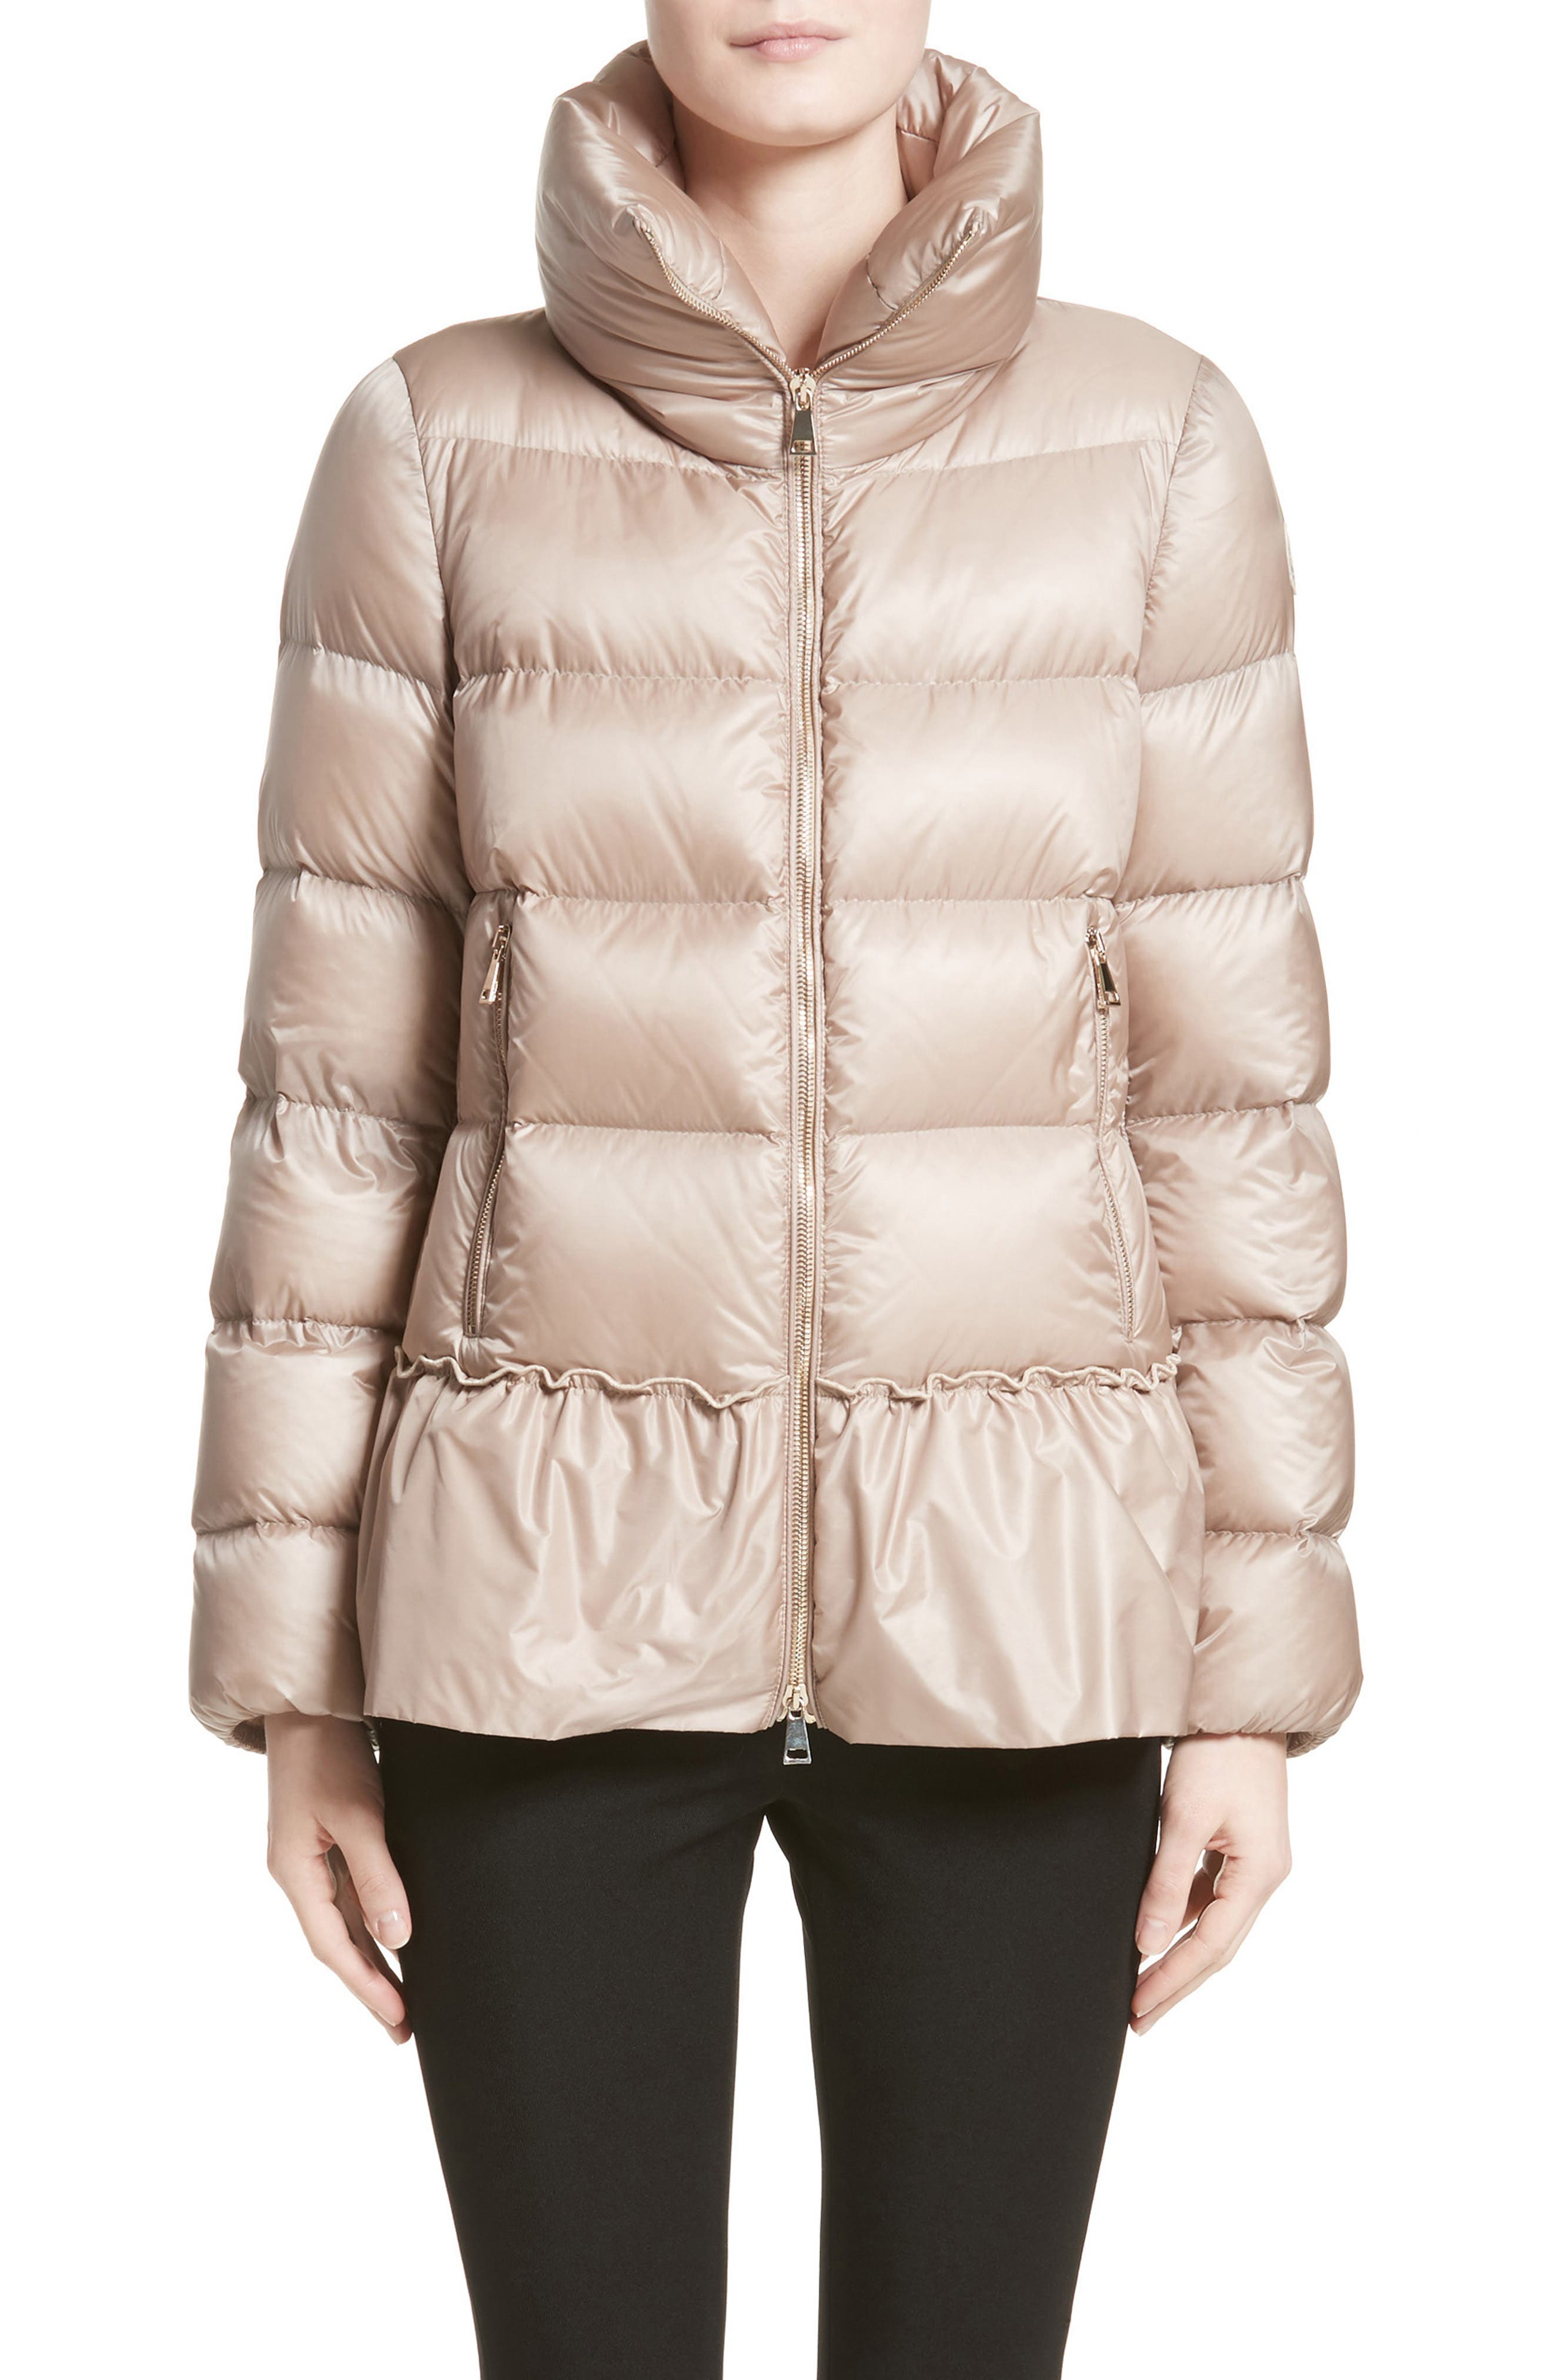 Anet Peplum Down Puffer Jacket,                         Main,                         color, NATURAL